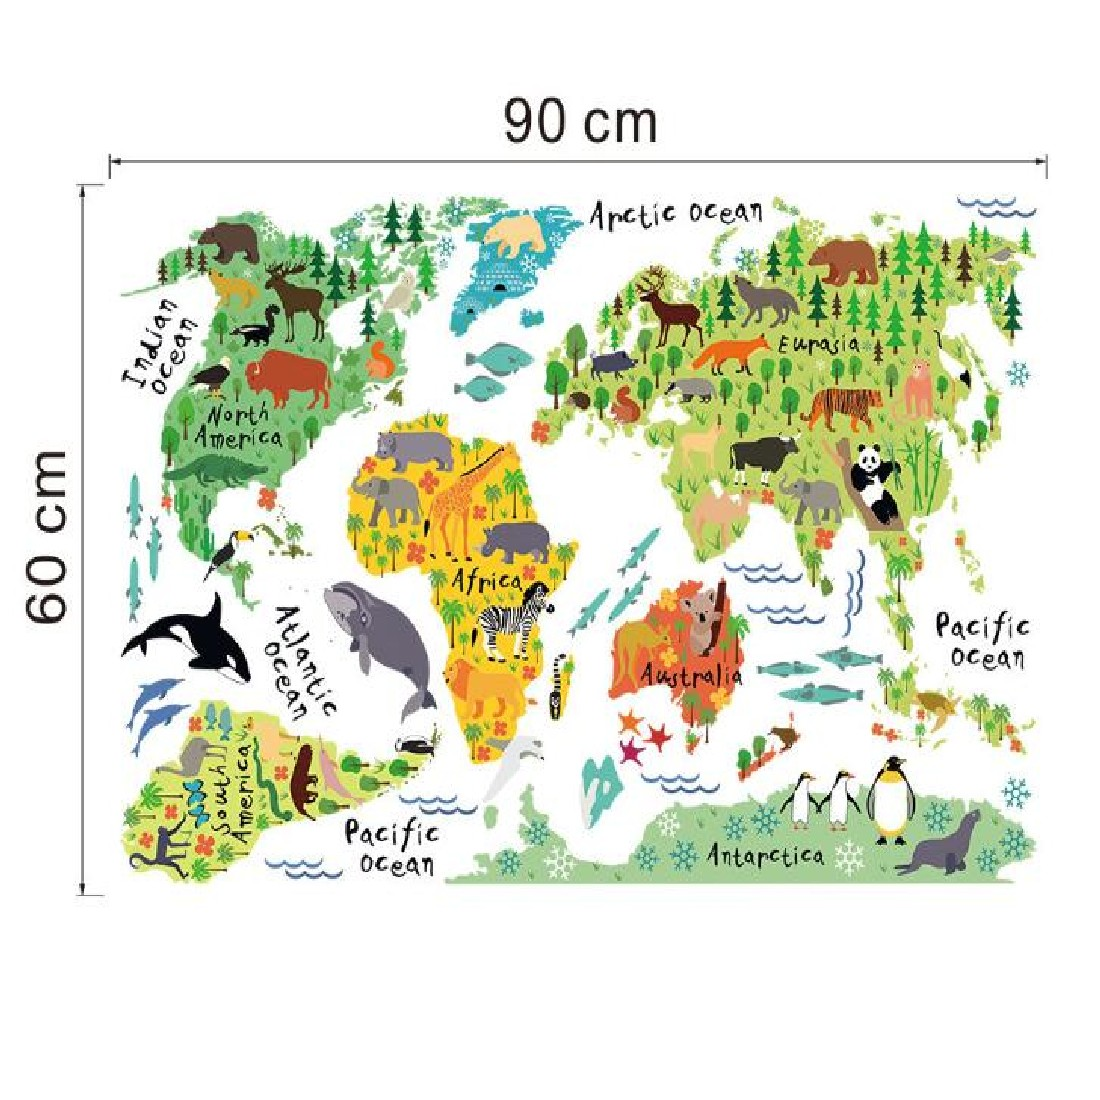 Hot sale removable diy mural wallpaper animal world map wall hot sale removable diy mural wallpaper animal world map wall stickers decal for home decoration free shipping in wall stickers from home garden on gumiabroncs Gallery